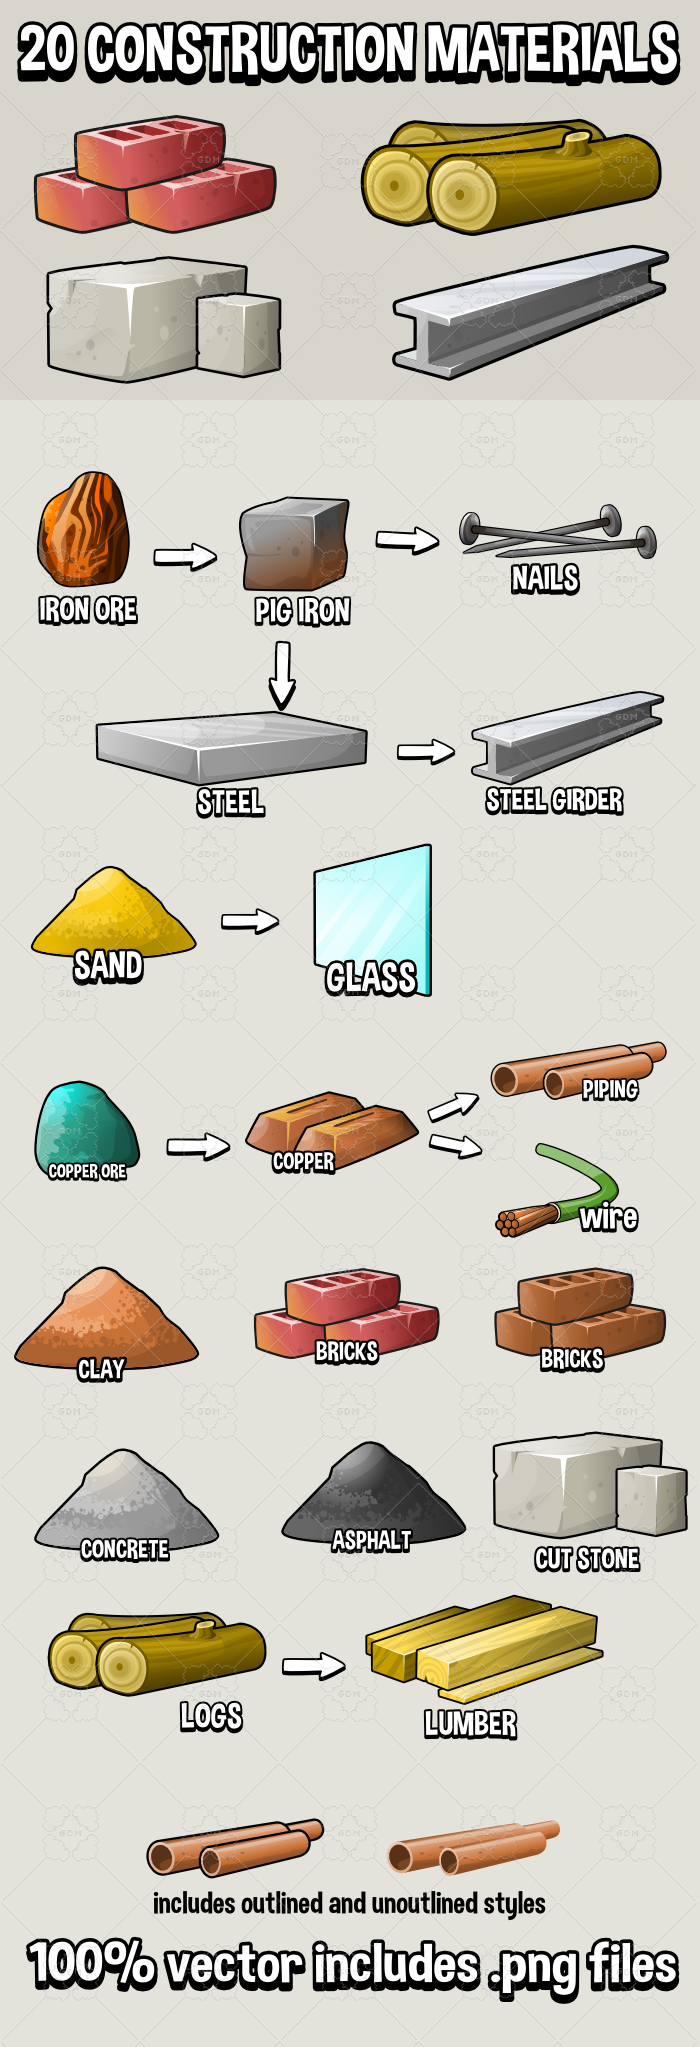 Construction resource materials